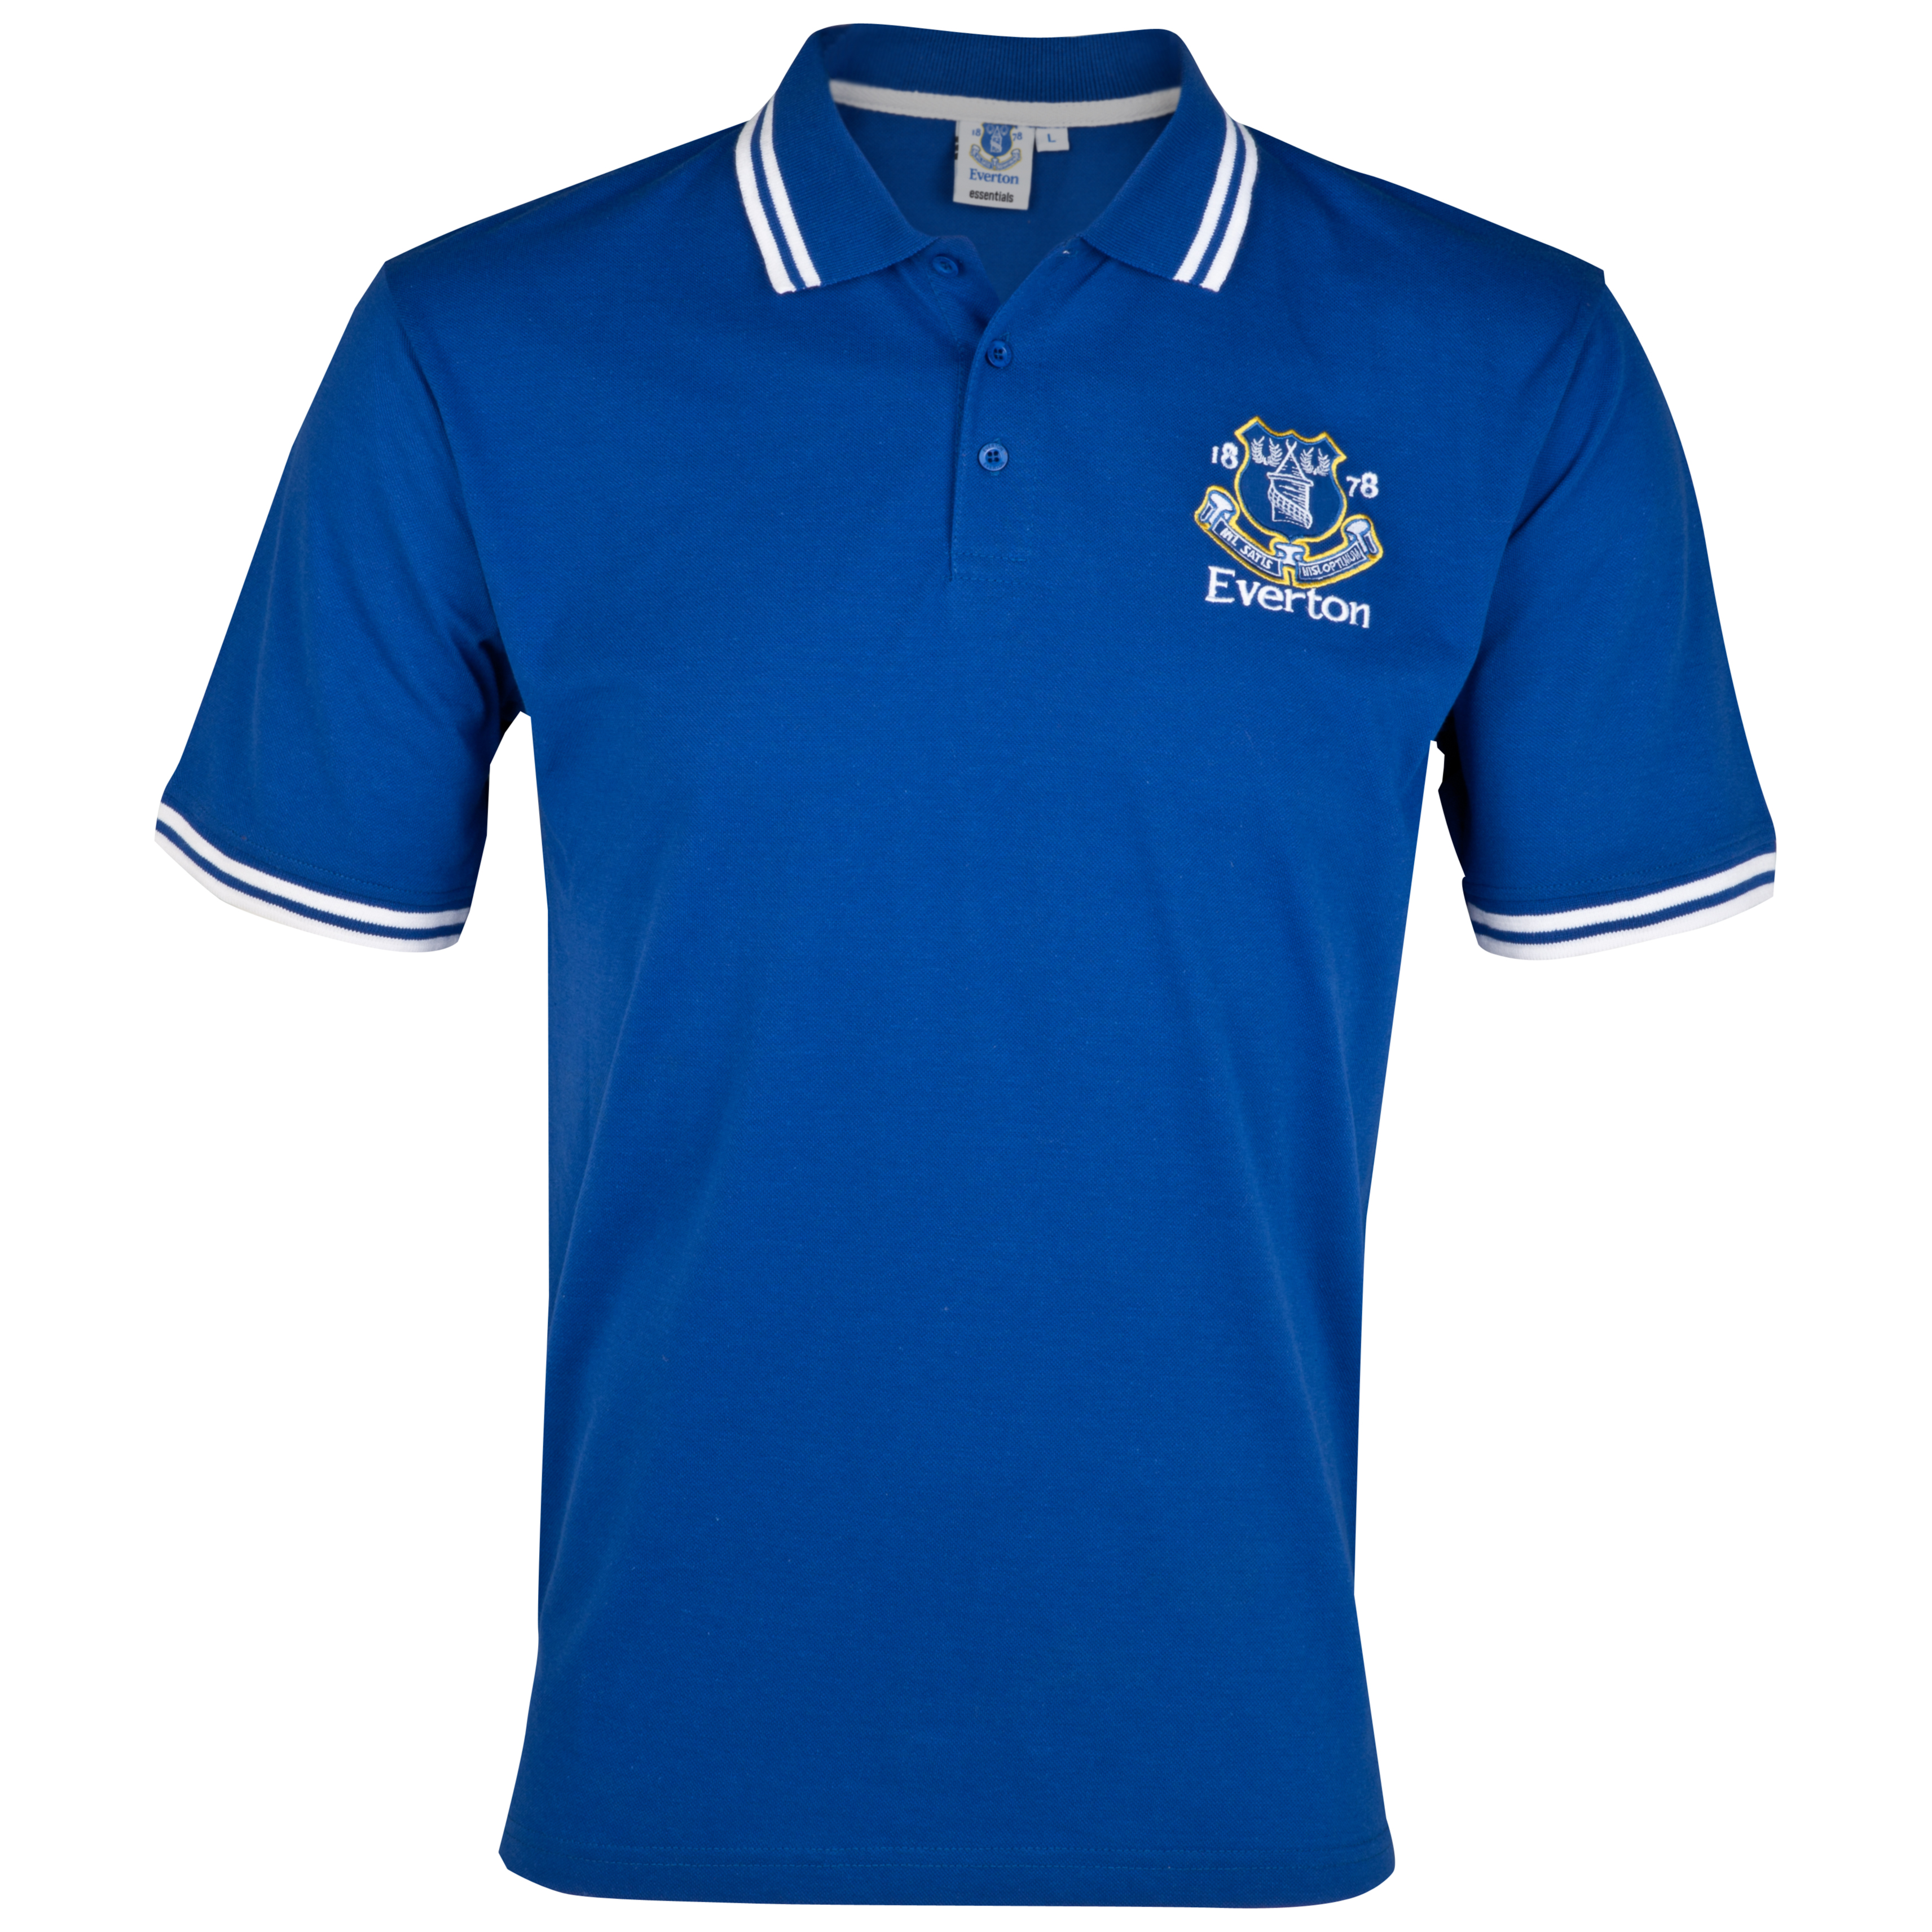 Everton Essential Evolve Crest Polo Top - Everton Blue